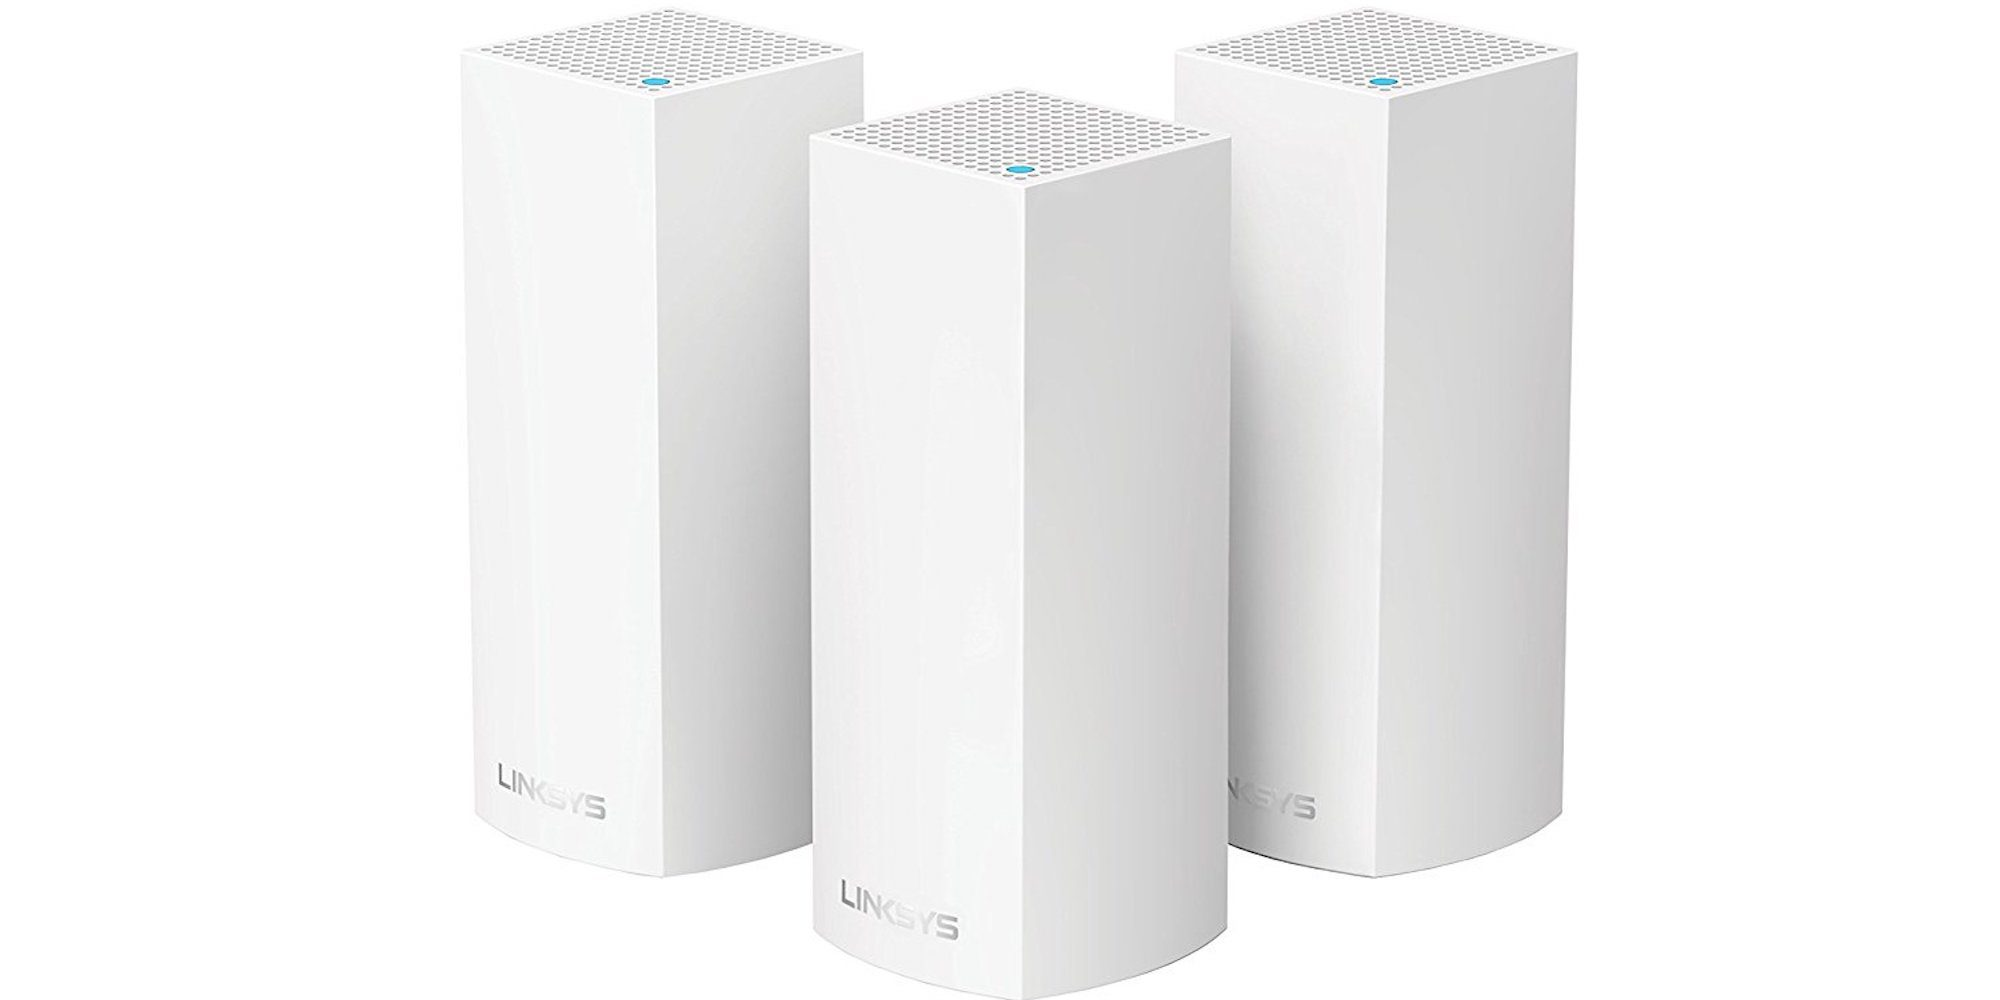 Linksys says HomeKit support is coming to Velop routers 'in the next several days' - 9to5Mac